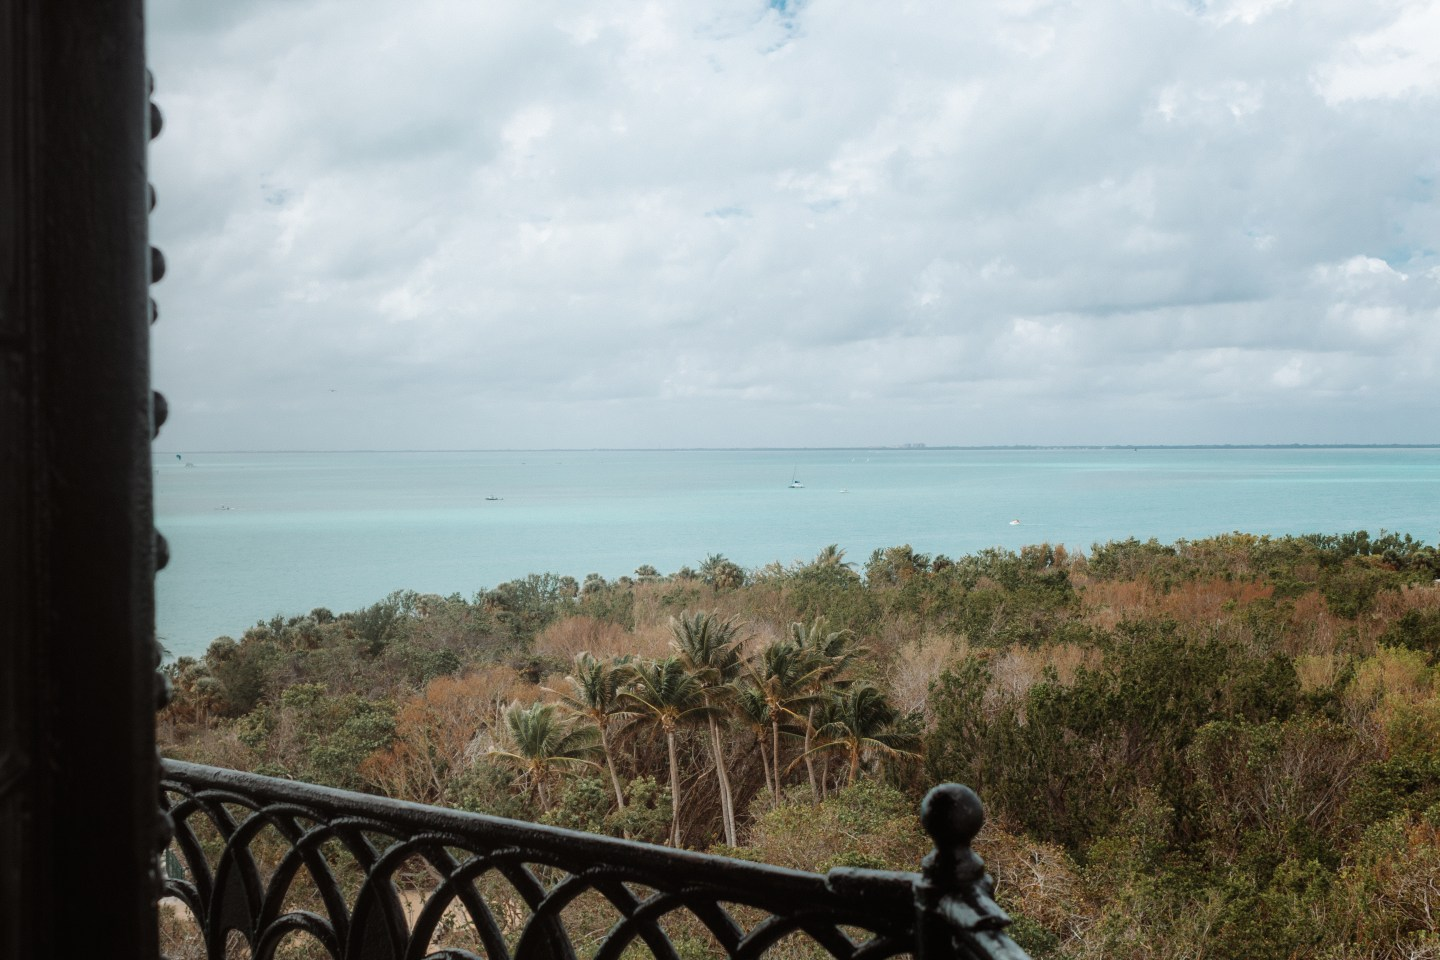 Illustrated by Sade - Ocean views at the top of Cape Florida Lighthouse at Bill Bagg's Park, Florida